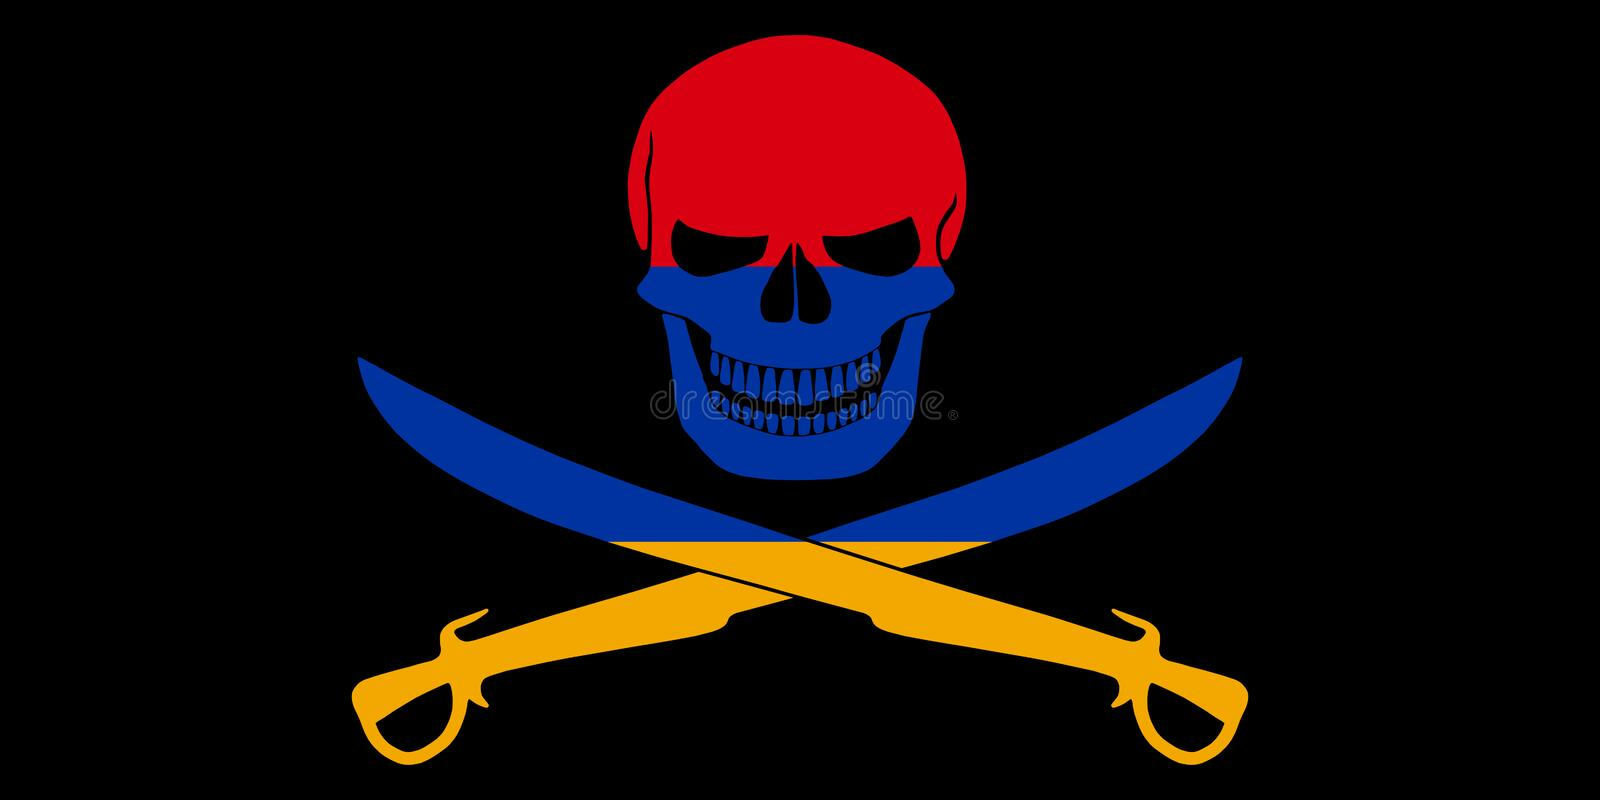 Pirate flag combined with Armenian flag. Black pirate flag with the image of Jolly Roger with cutlasses combined with colors of the Armenian flag stock illustration